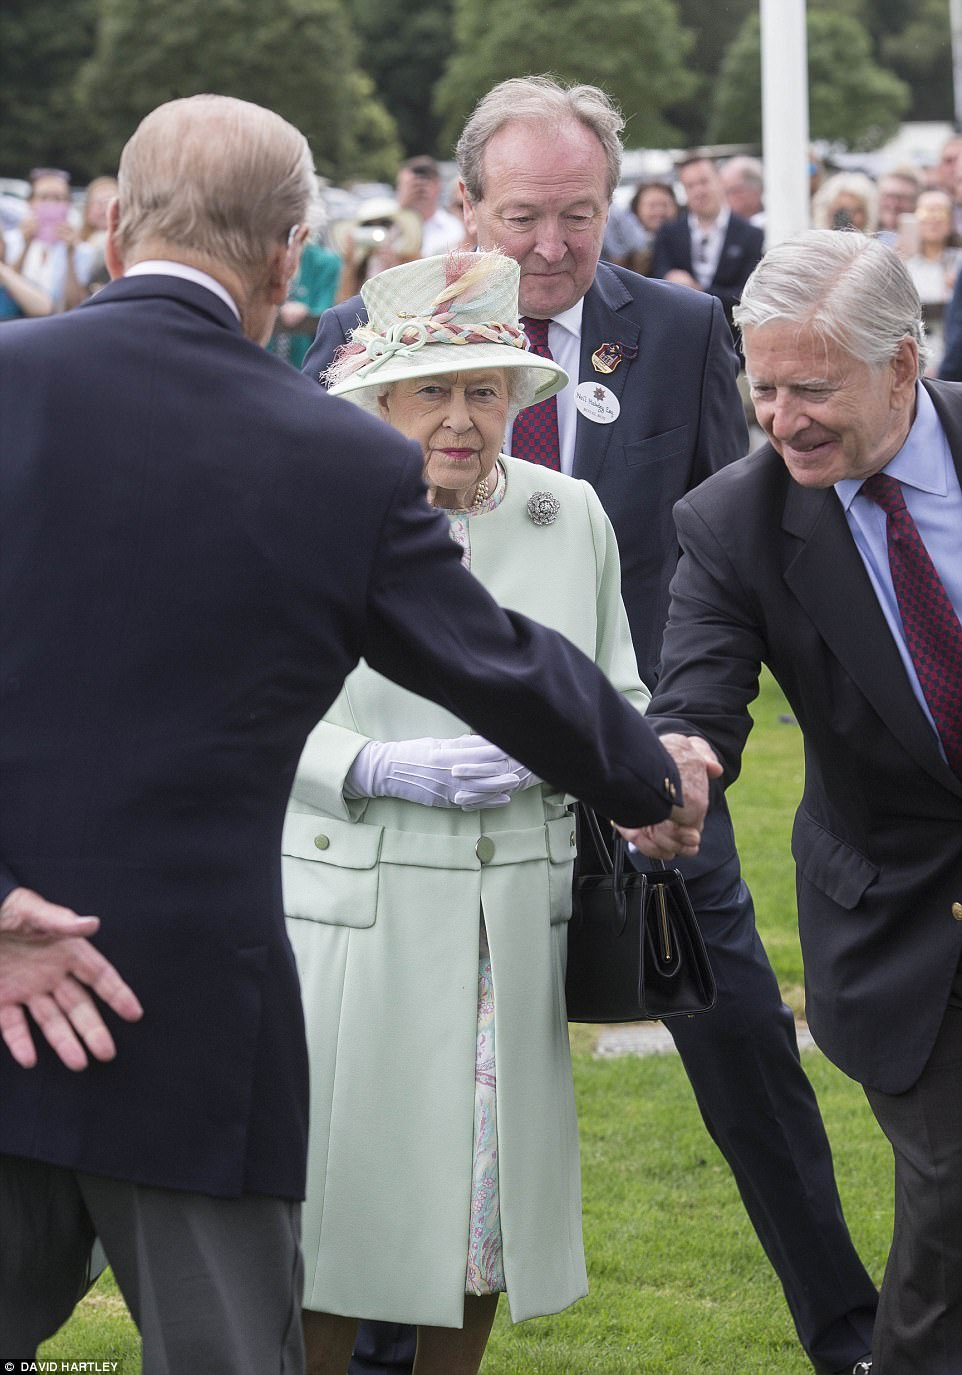 The Duke of Edinburgh could be seen shaking hands with officials on the Smith's Lawn while the Queen looked on